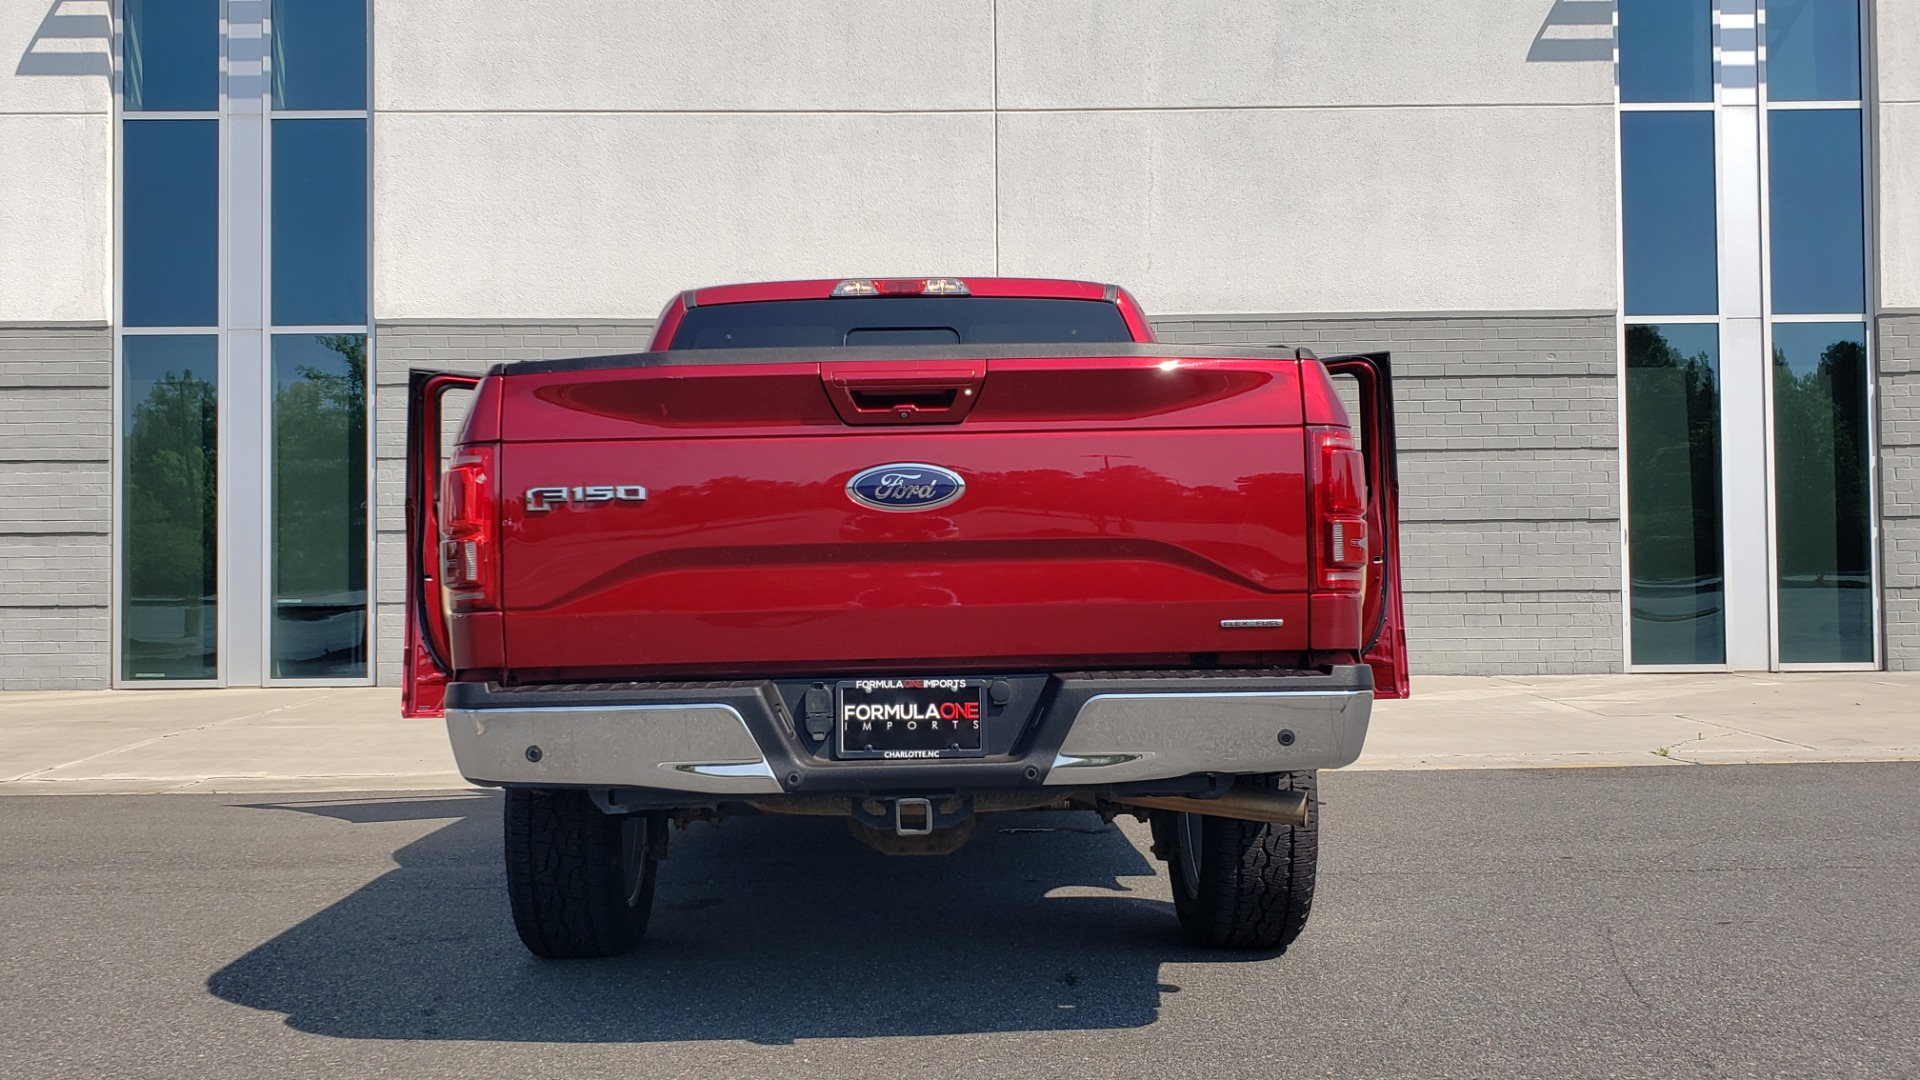 Used 2015 Ford F-150 LARIAT 4X4 SUPERCREW / 5.0L V8 / AUTO / NAV / SUNROOF / REARVIEW for sale $33,995 at Formula Imports in Charlotte NC 28227 23